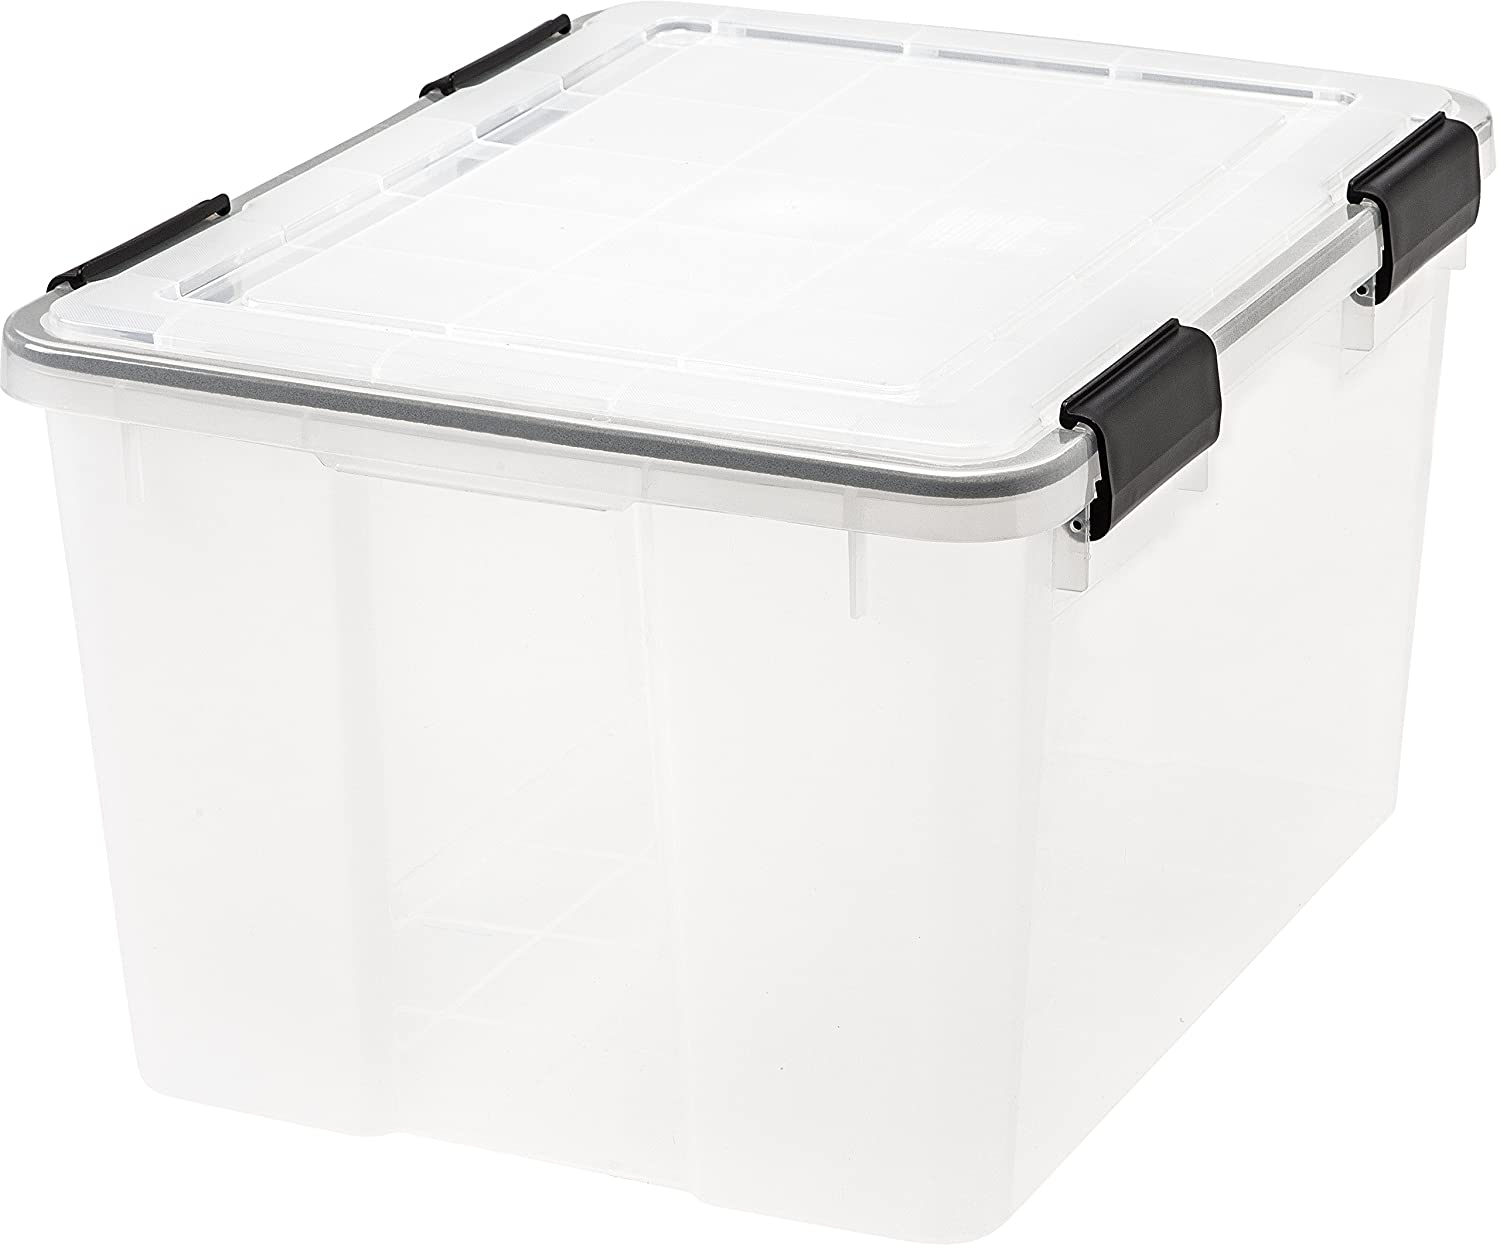 Amazon.com: IRIS 46 Quart WEATHERTIGHT Storage Box, Clear: Home U0026 Kitchen